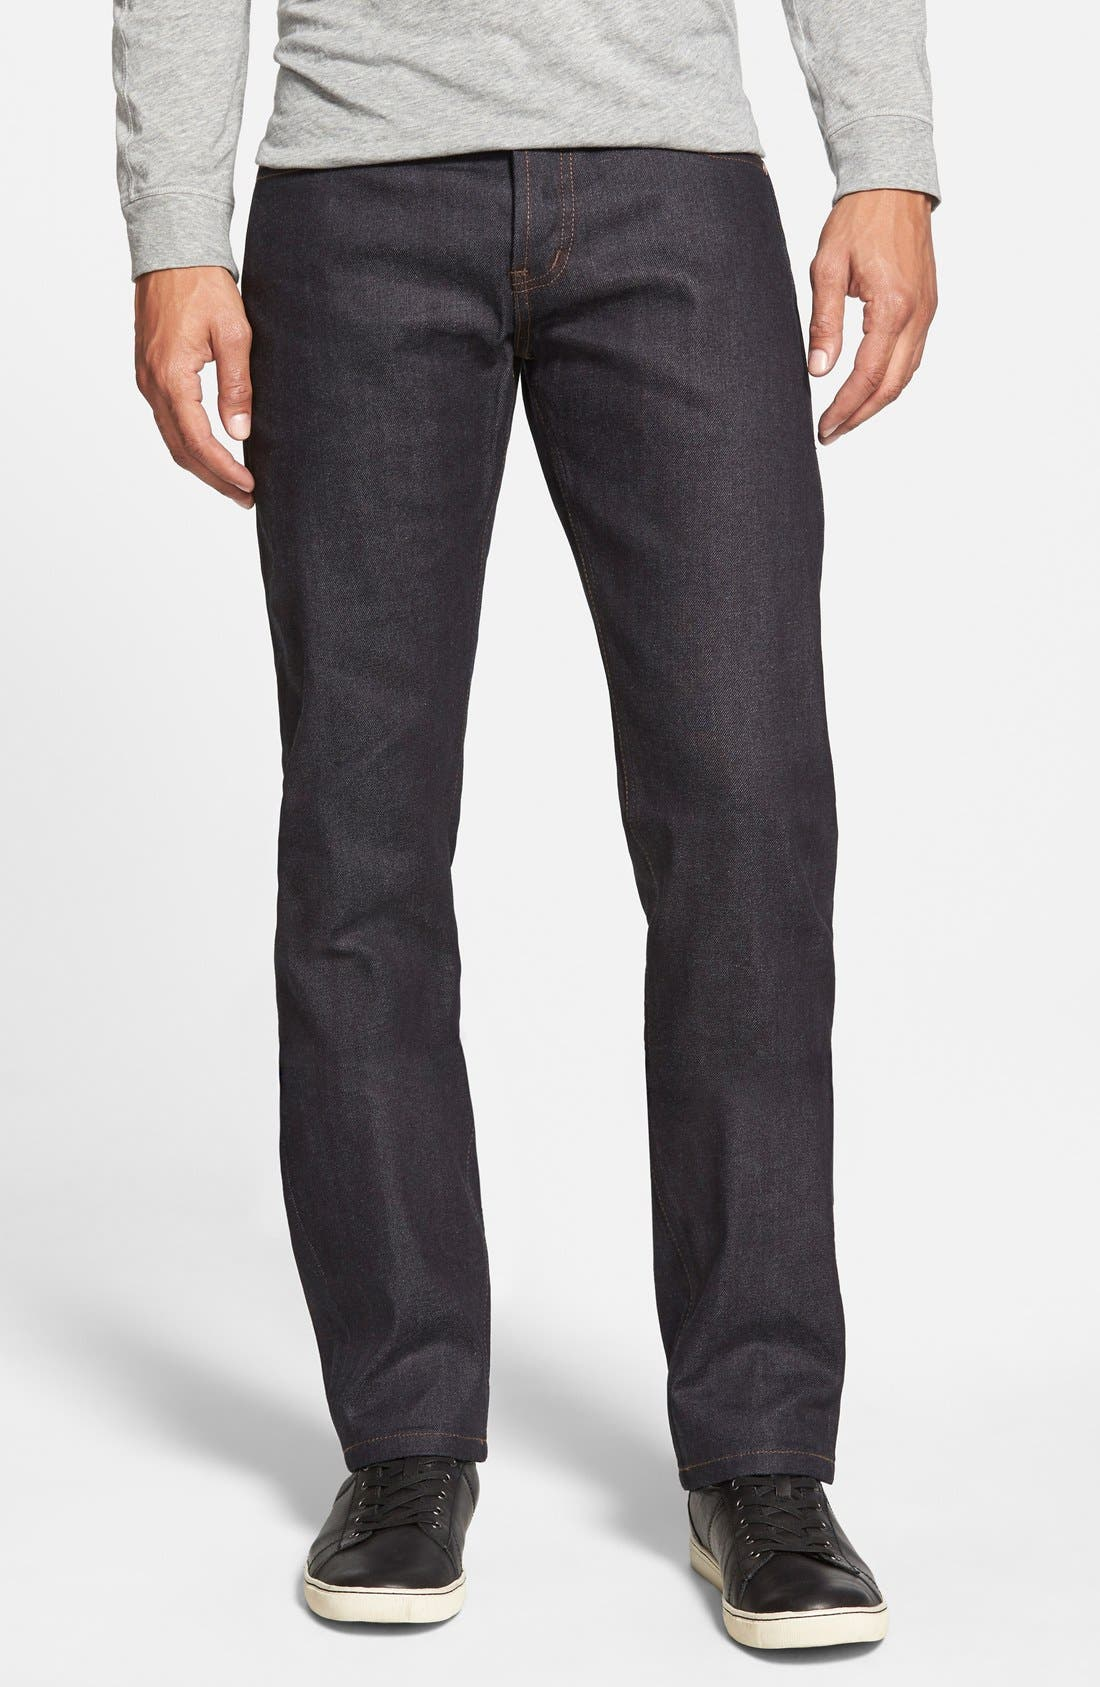 The Unbranded Brand 'UB222' Slim Tapered Fit Raw Selvedge Jeans (Indigo Stretch Selvedge)